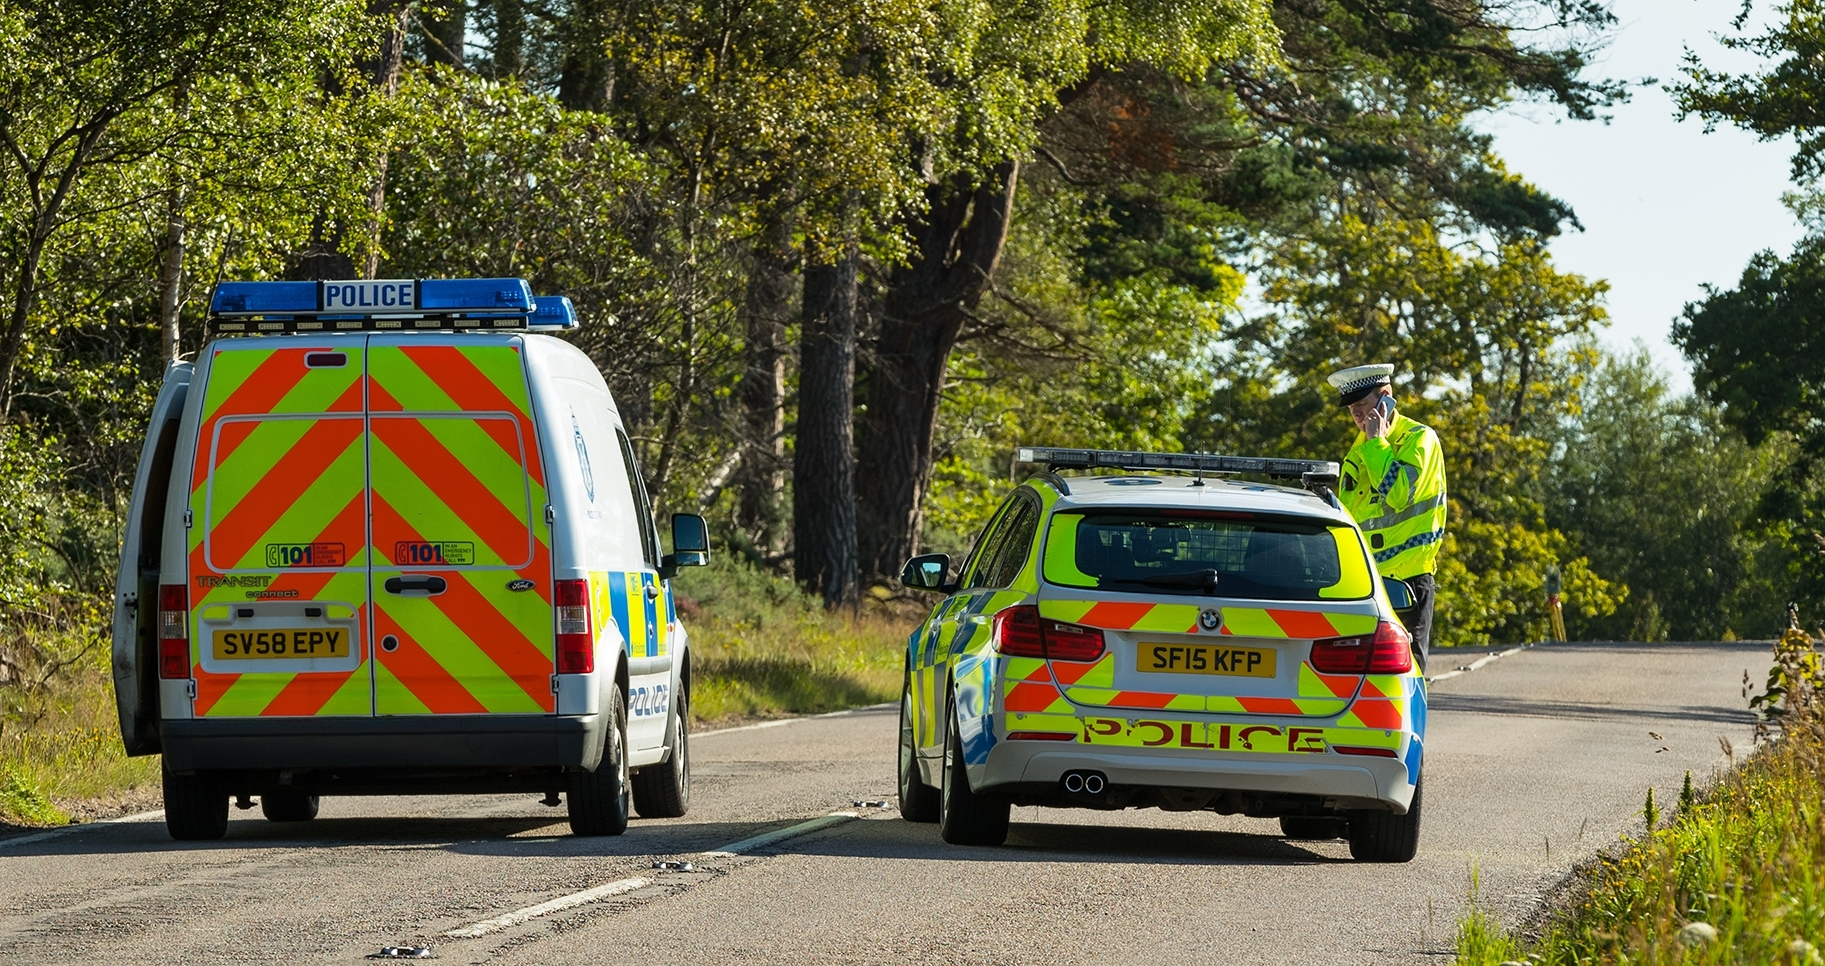 The A9 is currently closed while investigations are carried out.